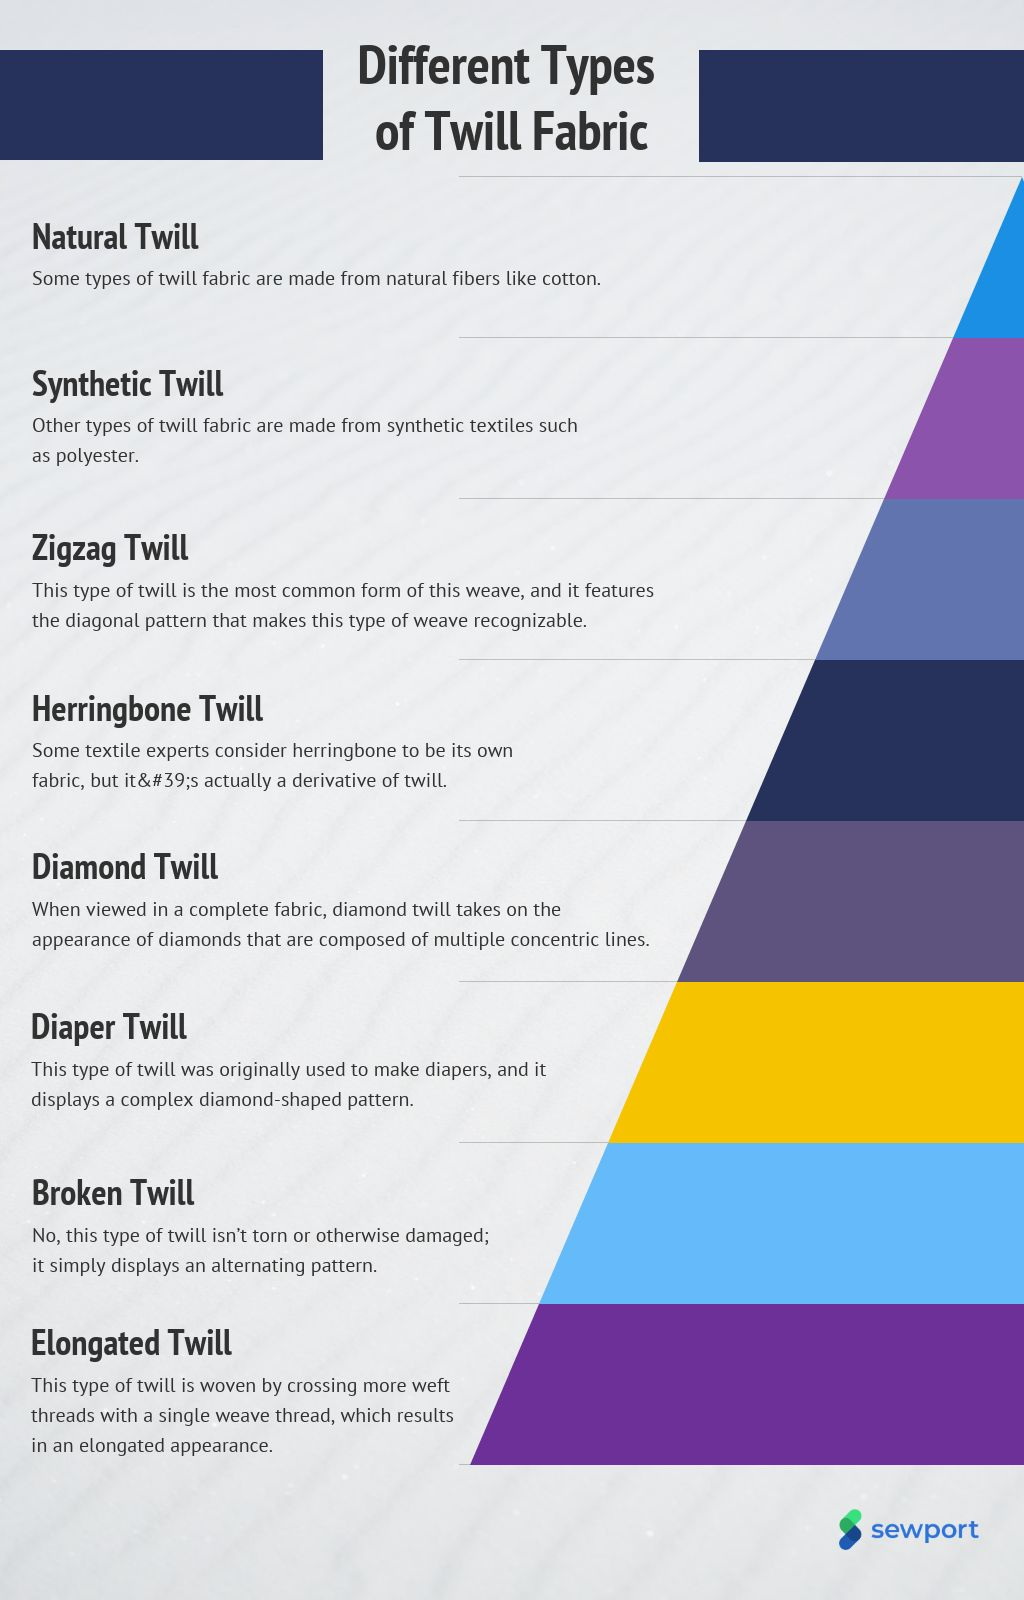 different types of twill fabric